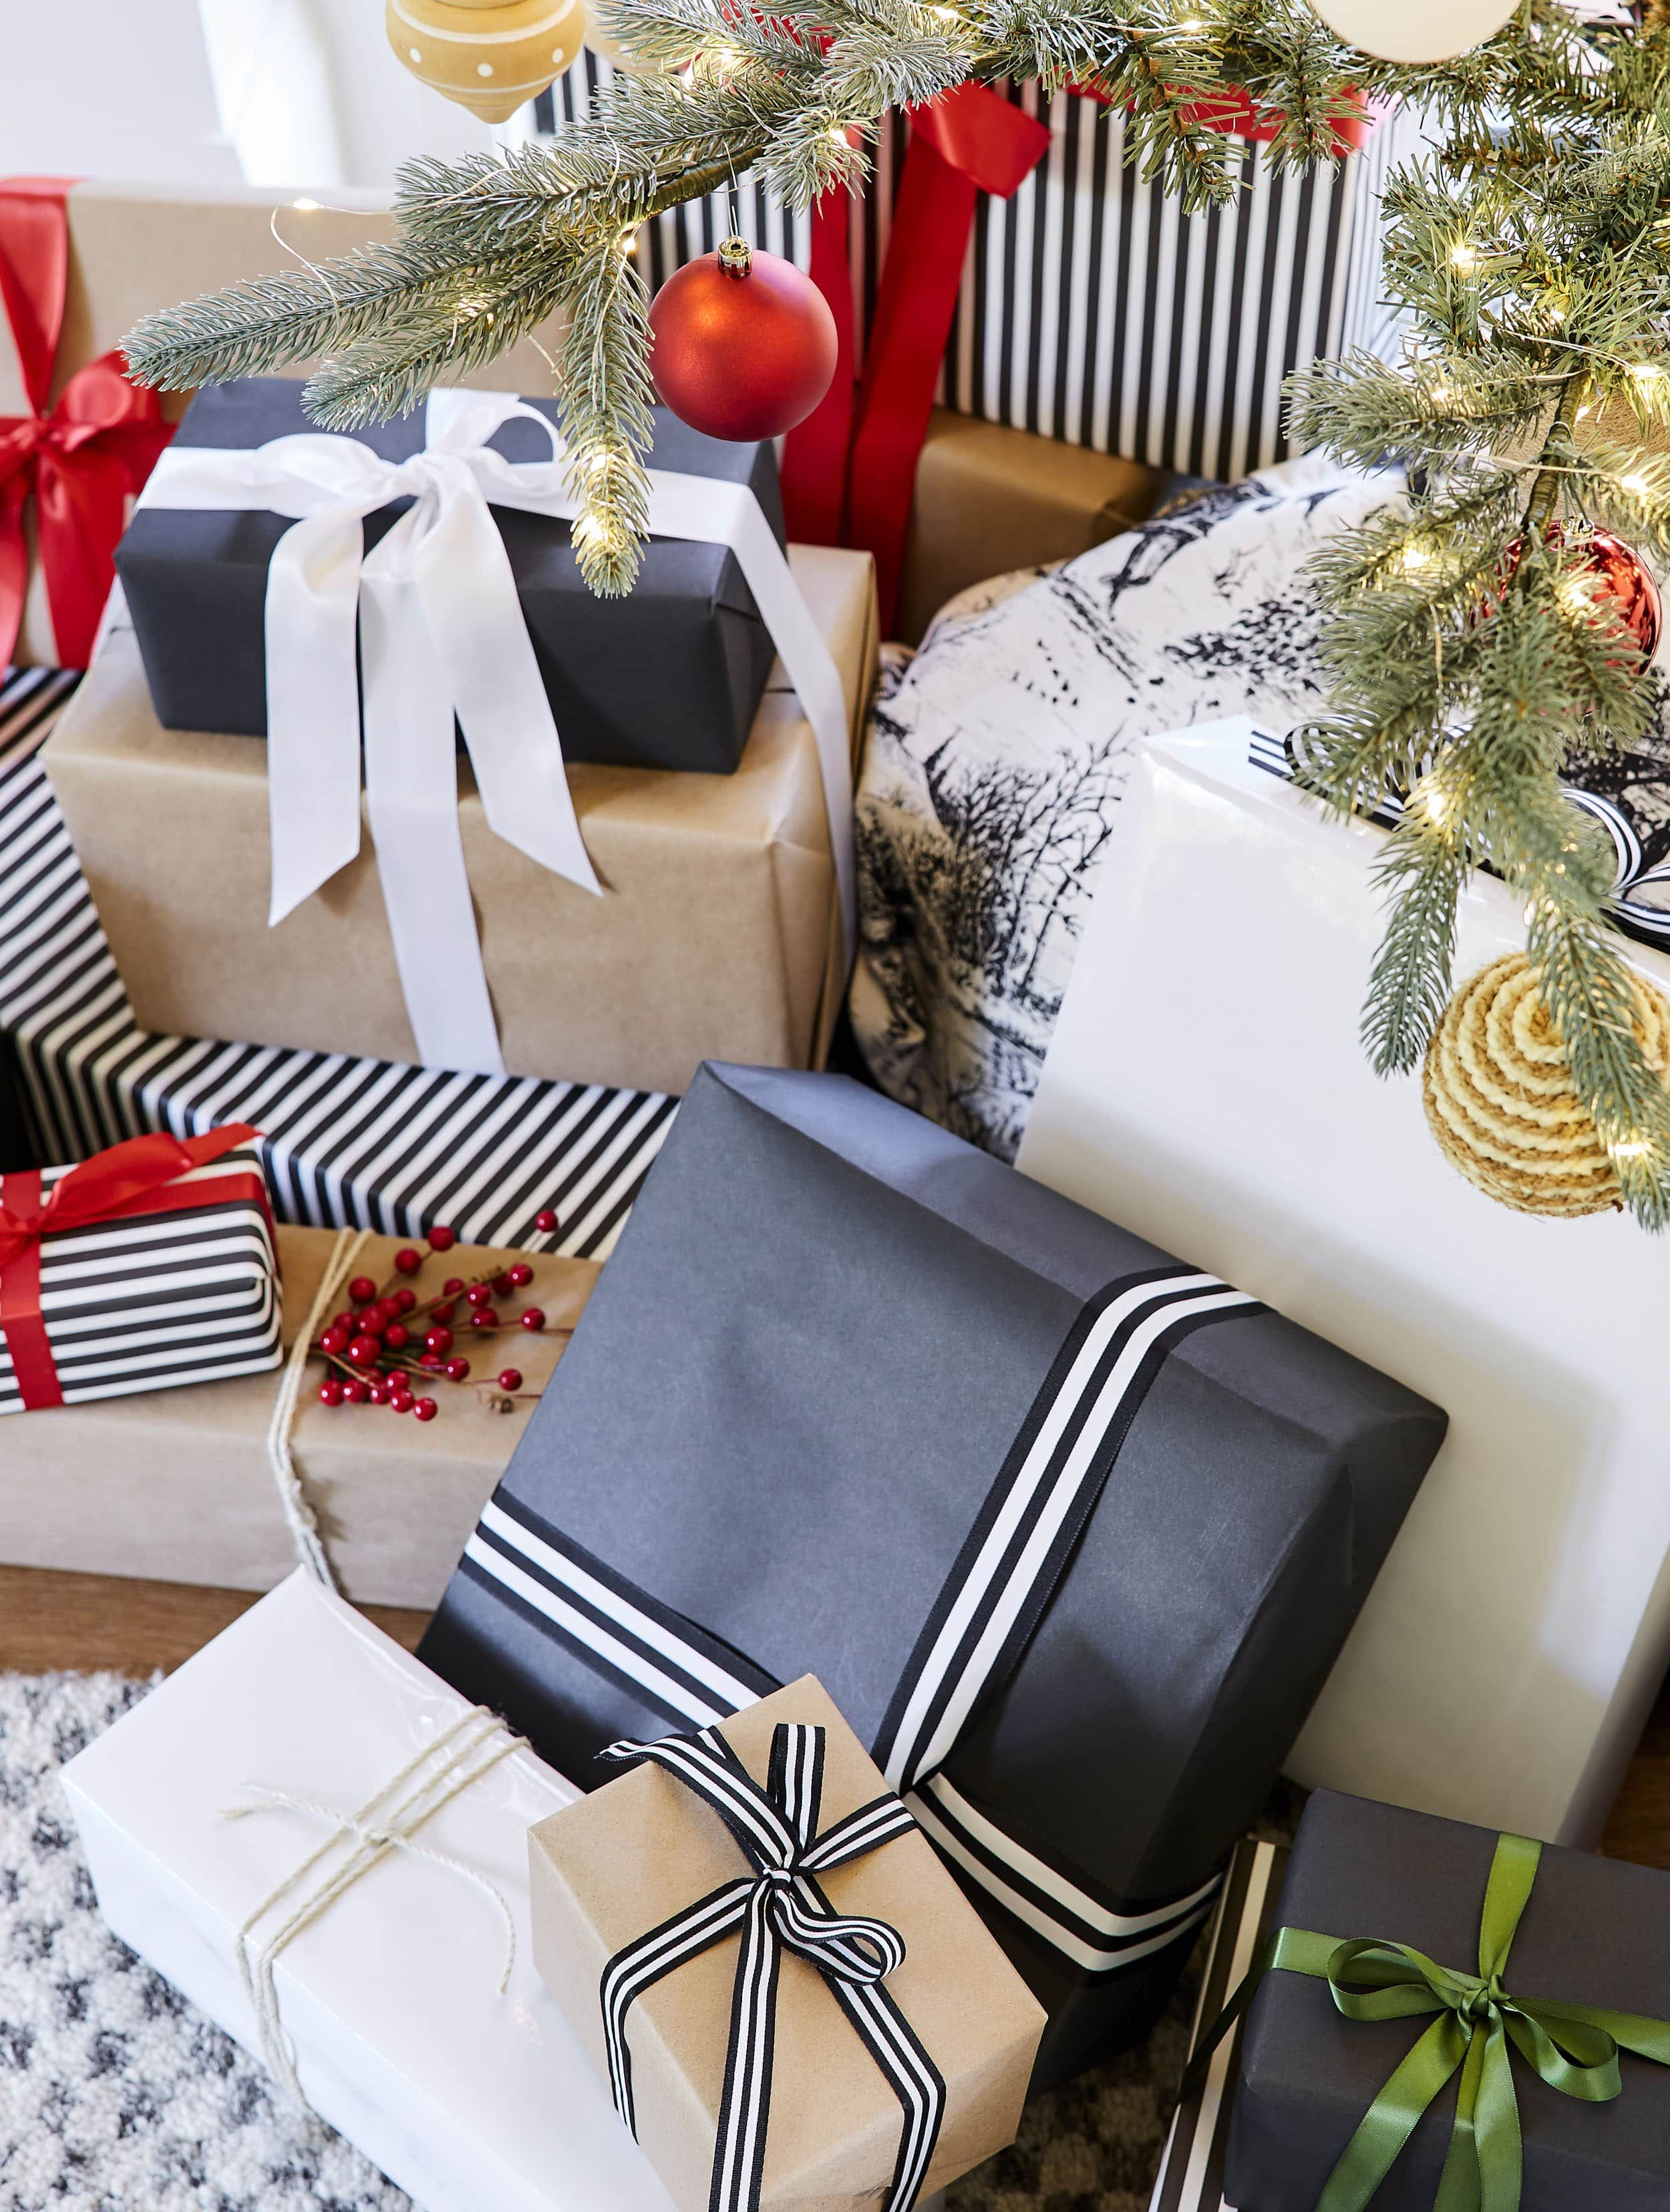 Christmas Decorating Ideas: How to Create a Refined ...